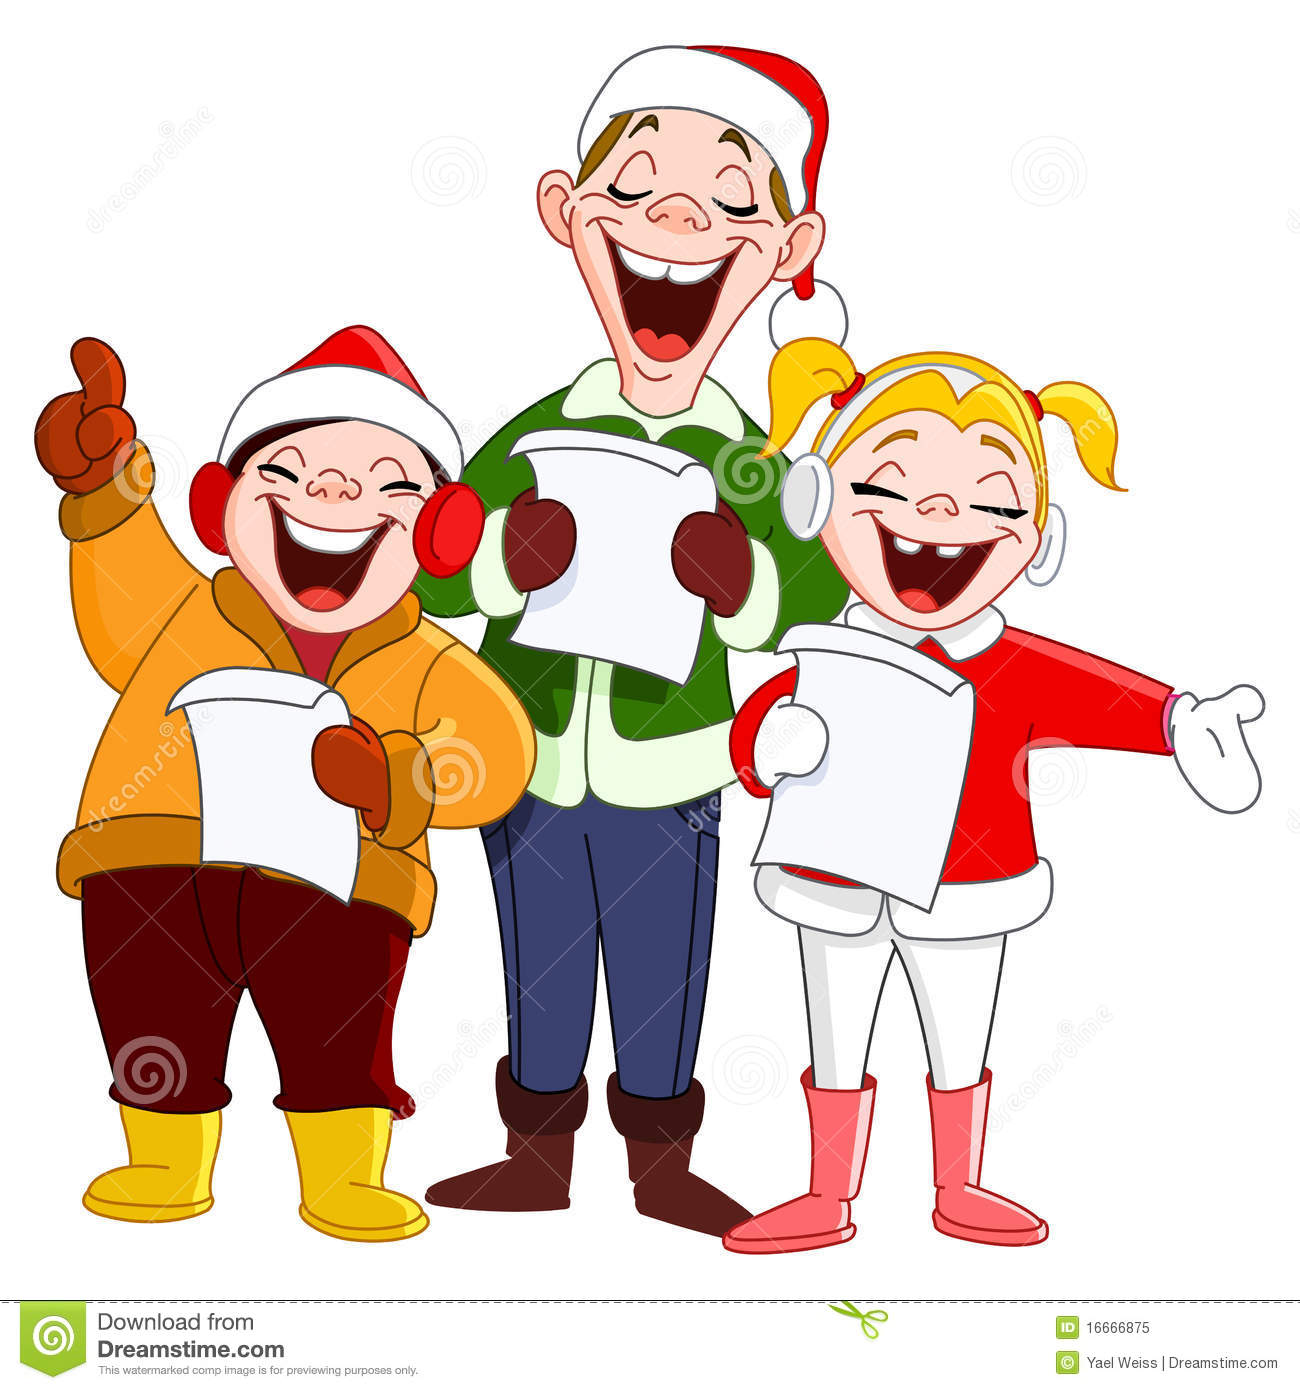 Carolling clip art for. Caroling clipart activity